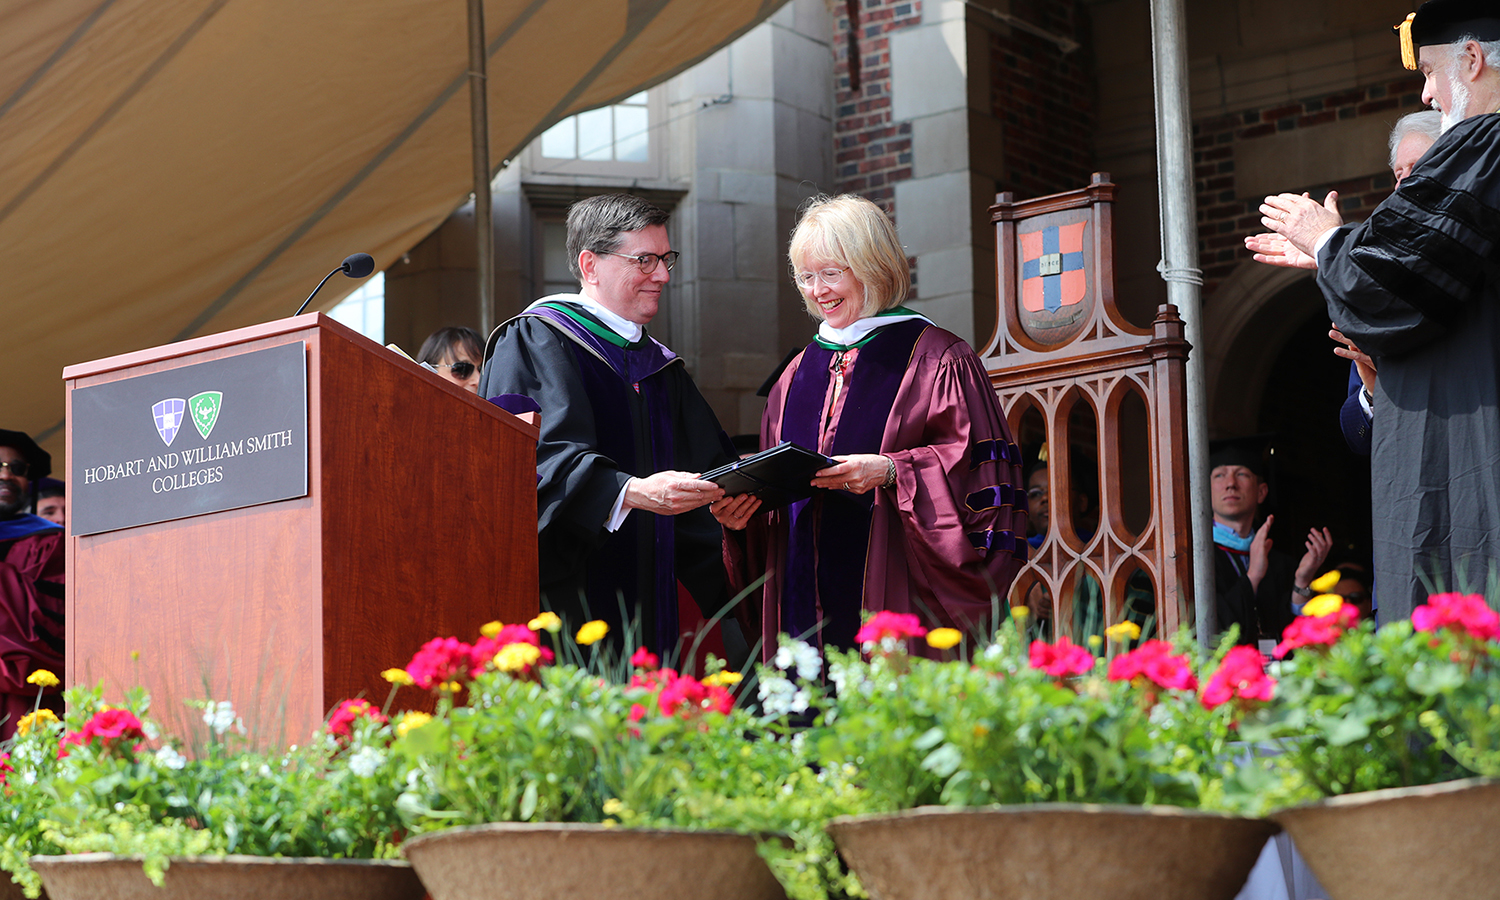 A leader with numerous local and regional organizations touching a variety of issues, including healthcare, diversity, education and poverty, Mary Herlihy Gearan accepts her honorary degree from her husband, Mark D. Gearan, during this year's Commencent ceremony on Sunday.